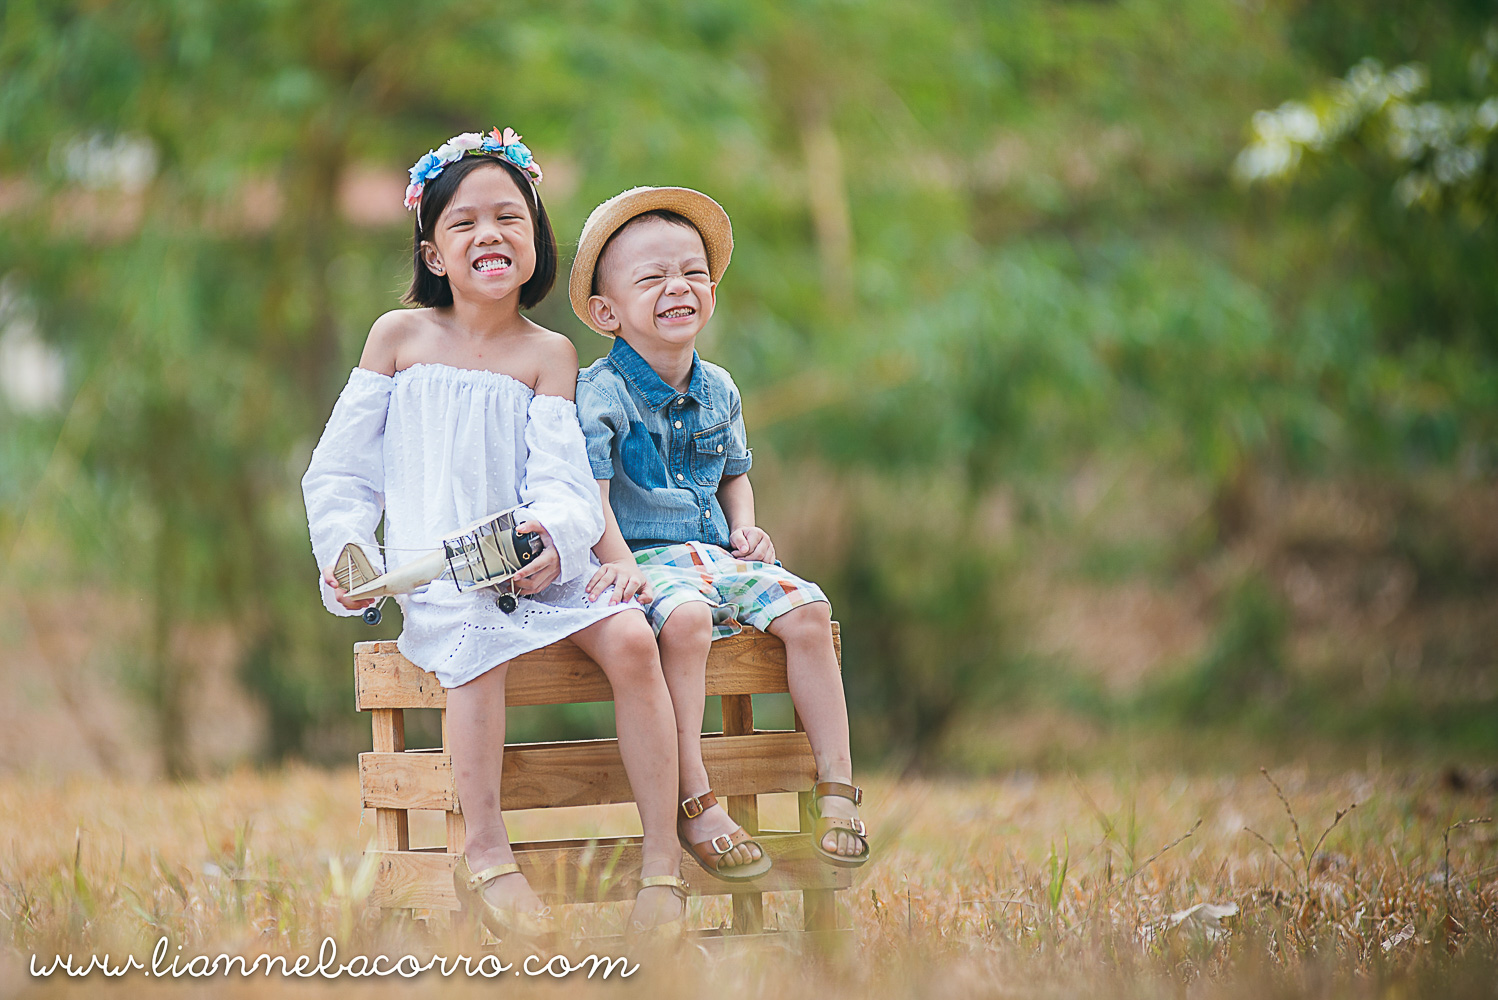 Geli Family - Lianne Bacorro Photography - Something Pretty Manila-5